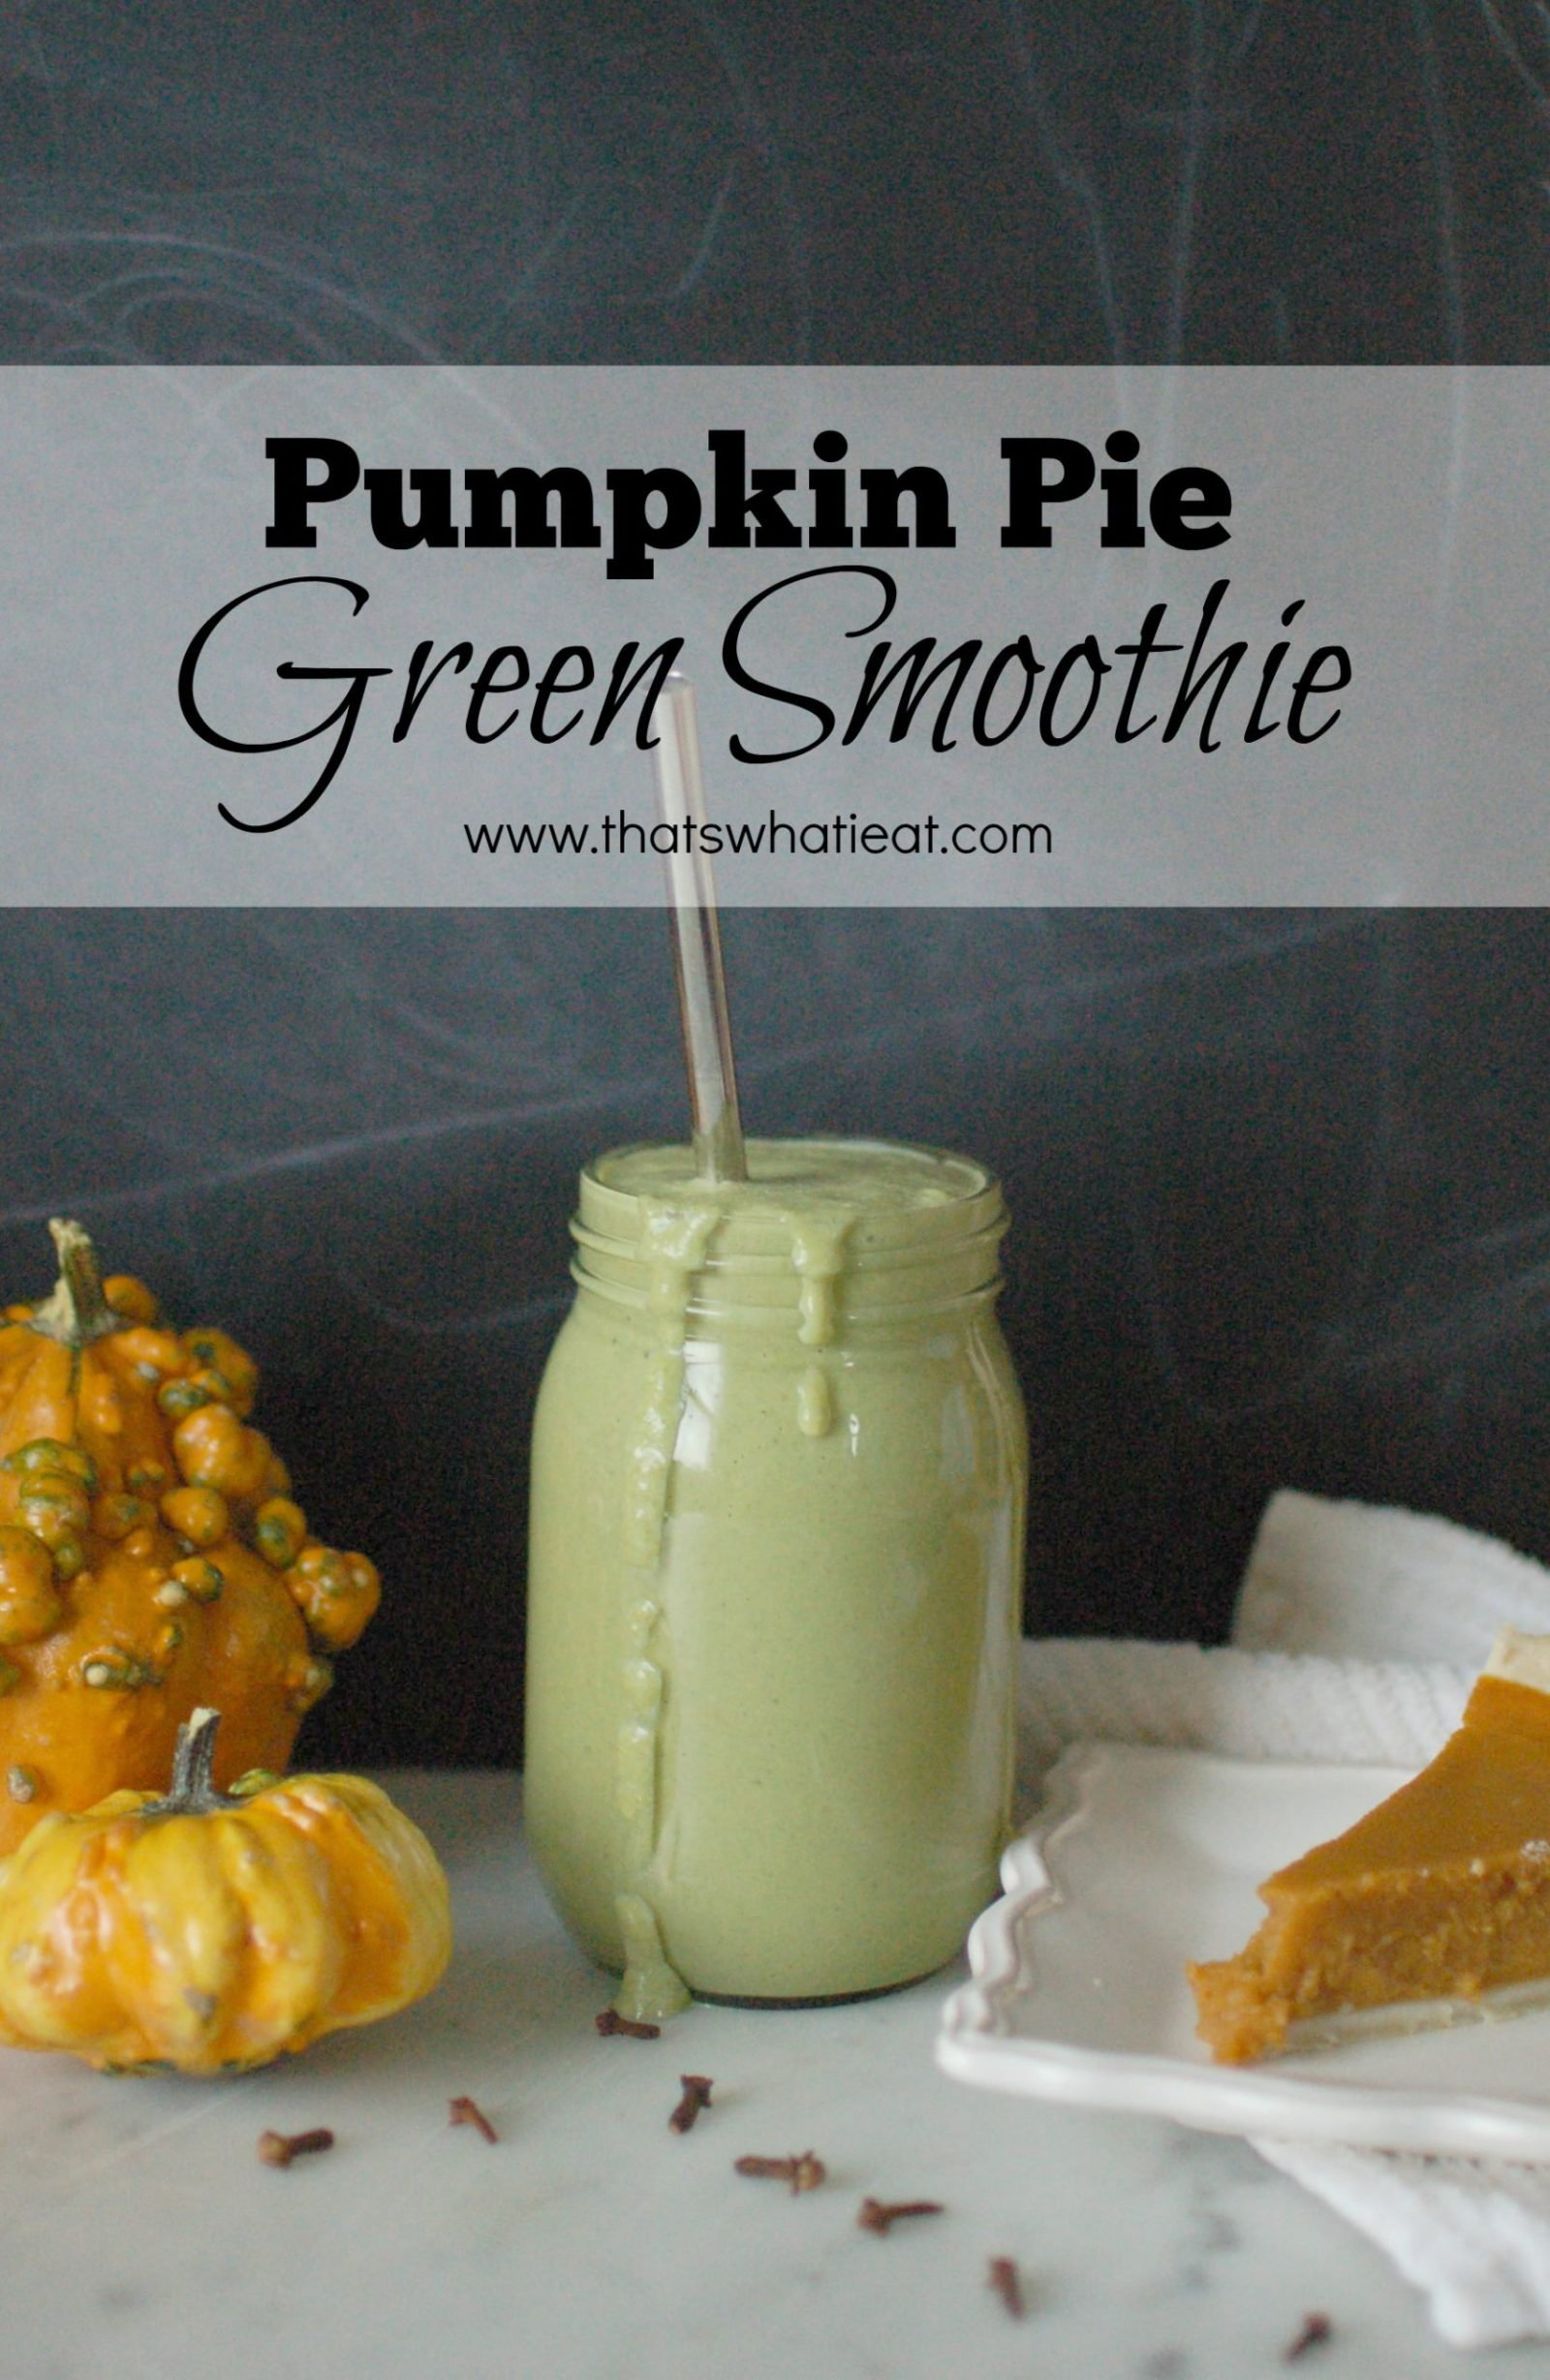 Pumpkin Pie Green Smoothie